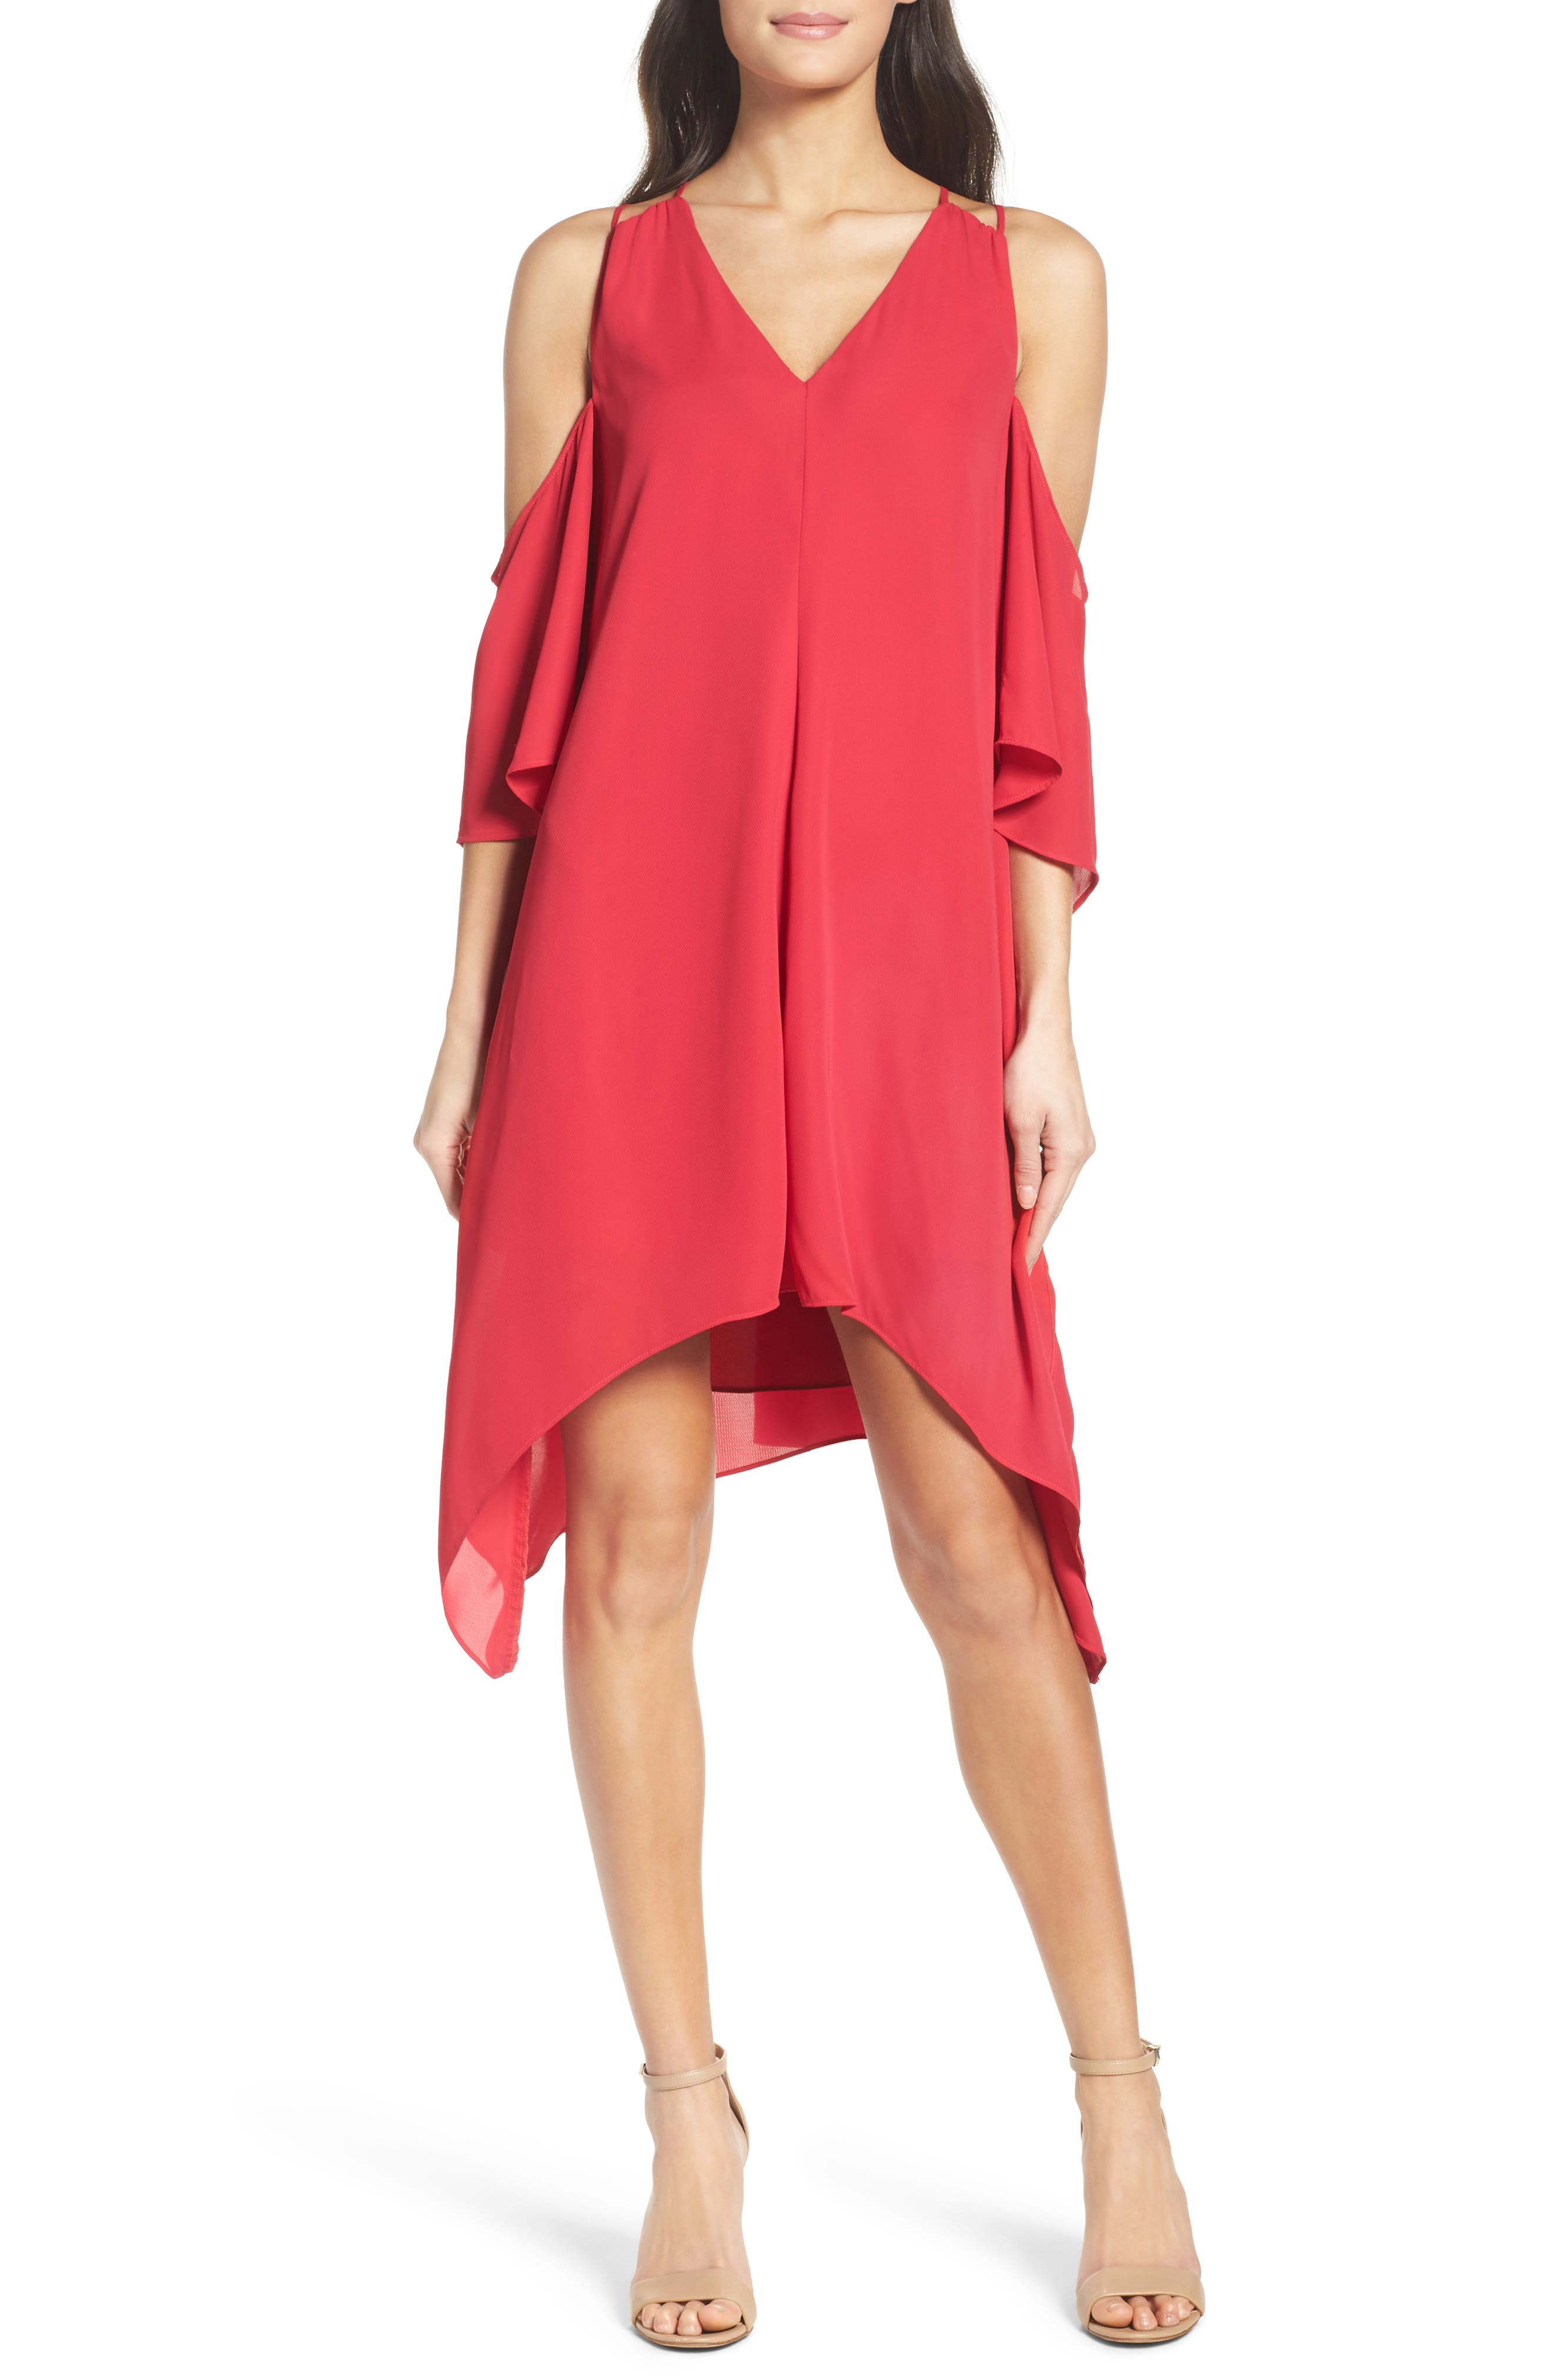 Adelyn Rae Fiona Cold Shoulder Shift Dress